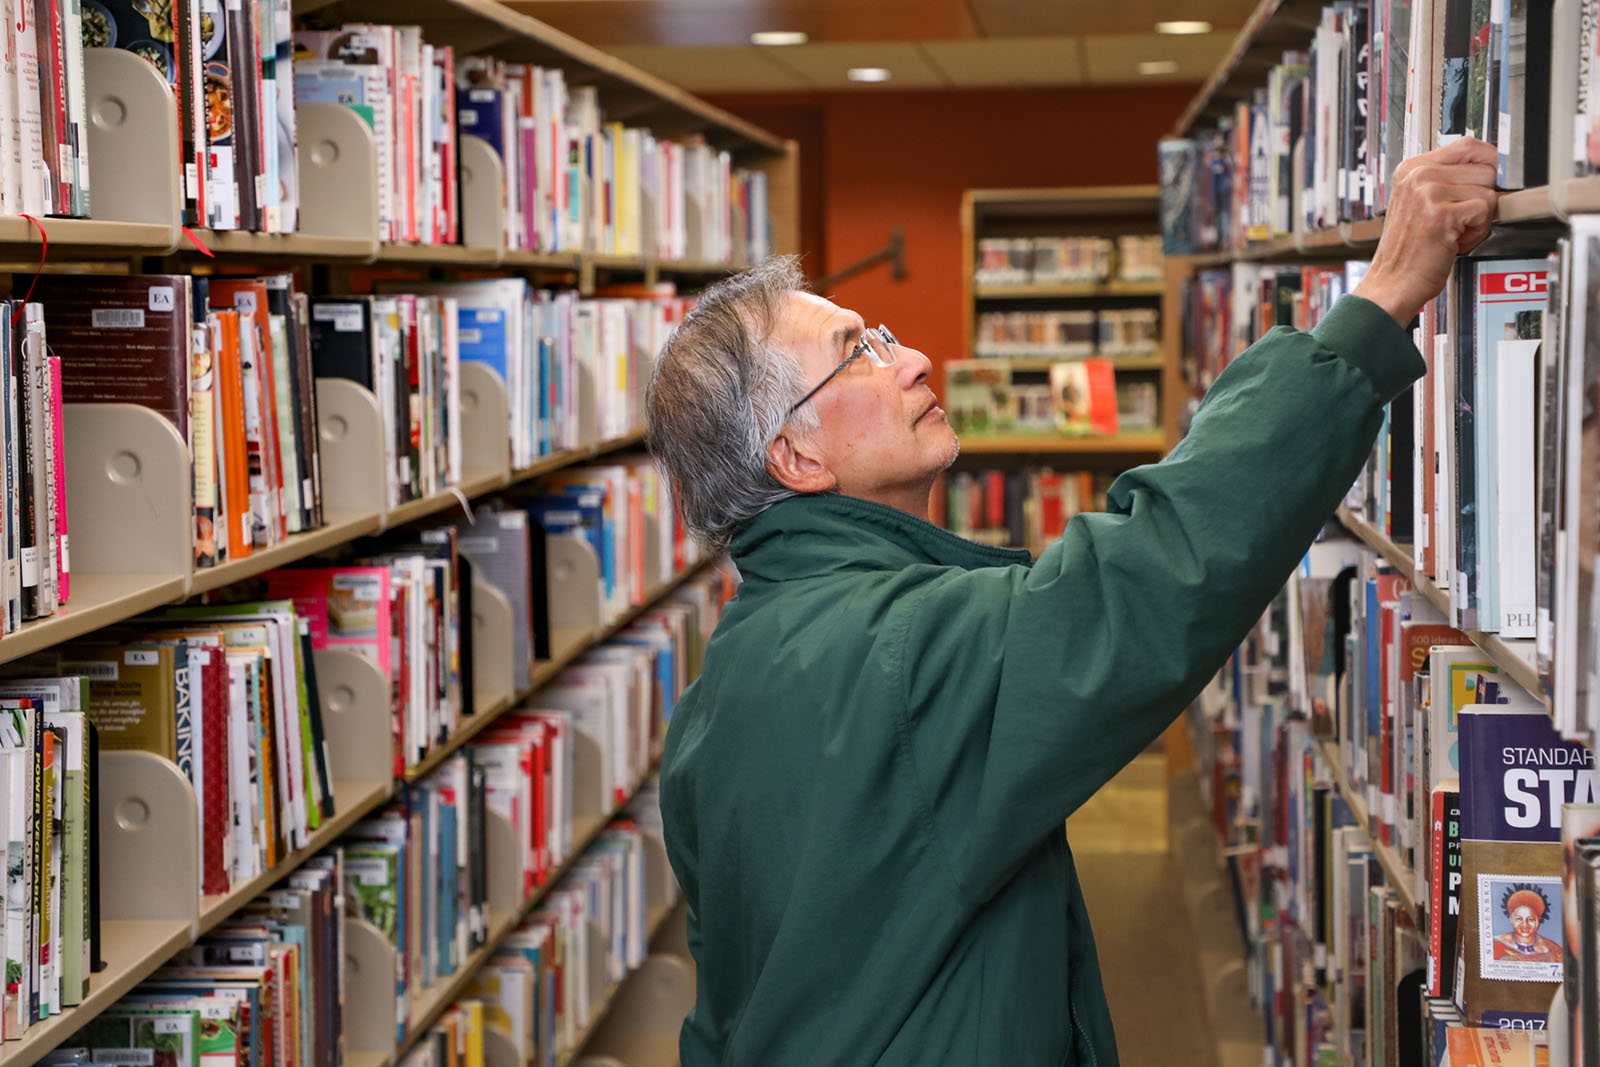 A man stands in the aisle between two bookshelves and reaches up to take down a book